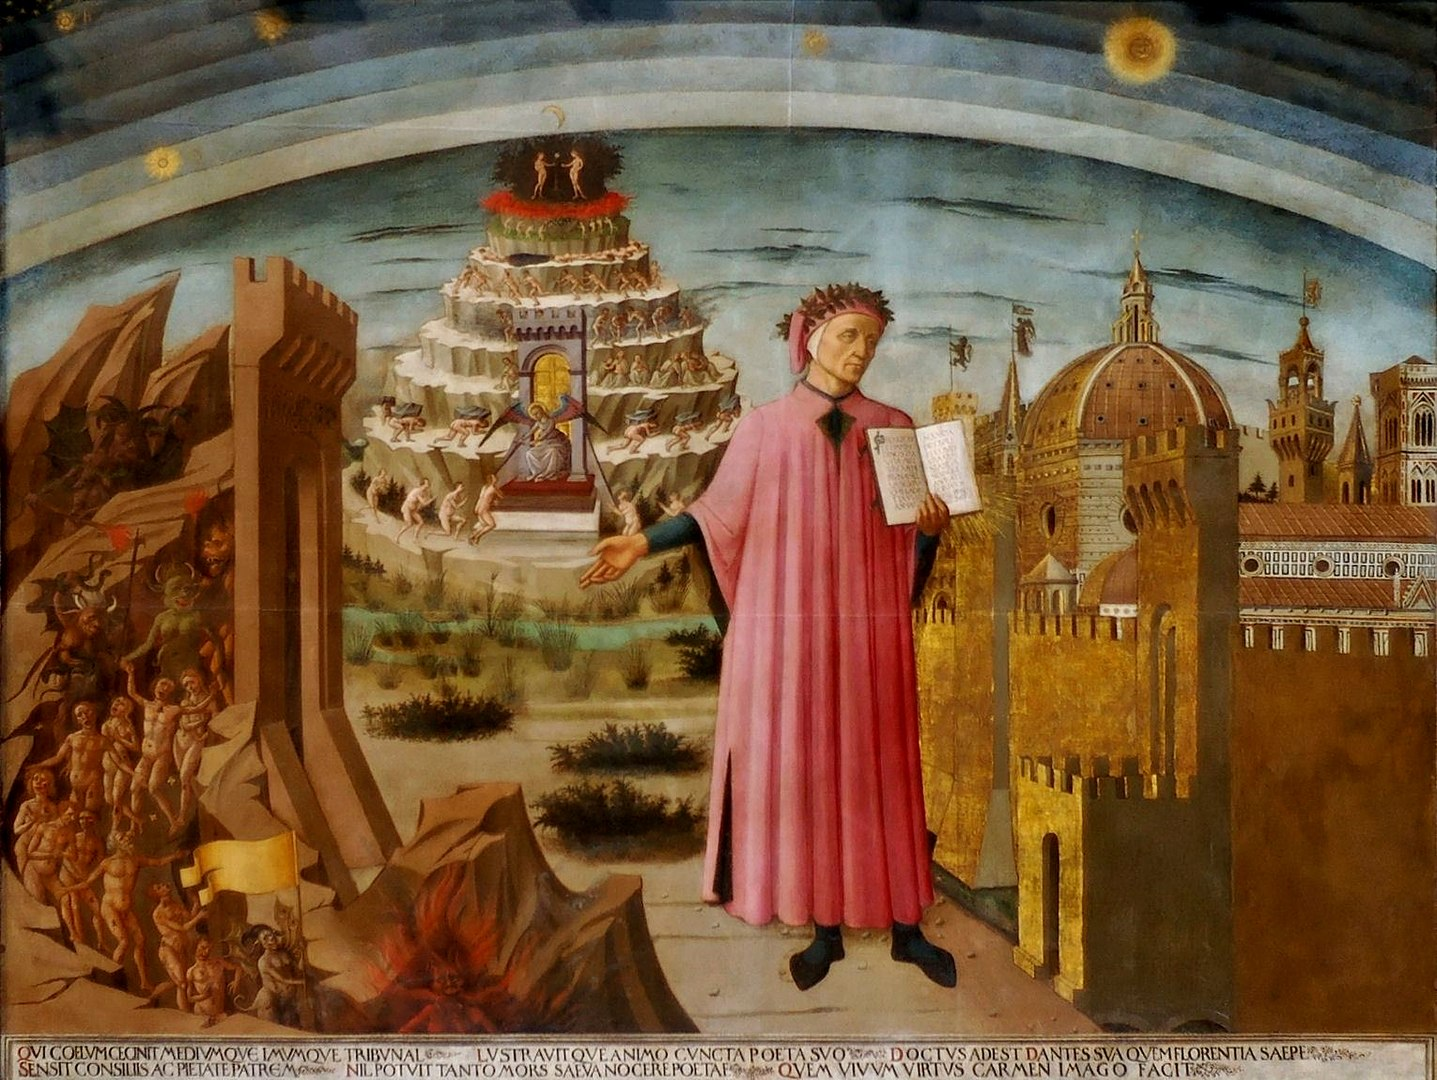 Dante by Domenico di Michelino - the painting is on the West Wall of Duomo di Firenze, Santa Maria dei Fiori, Florence - 1465